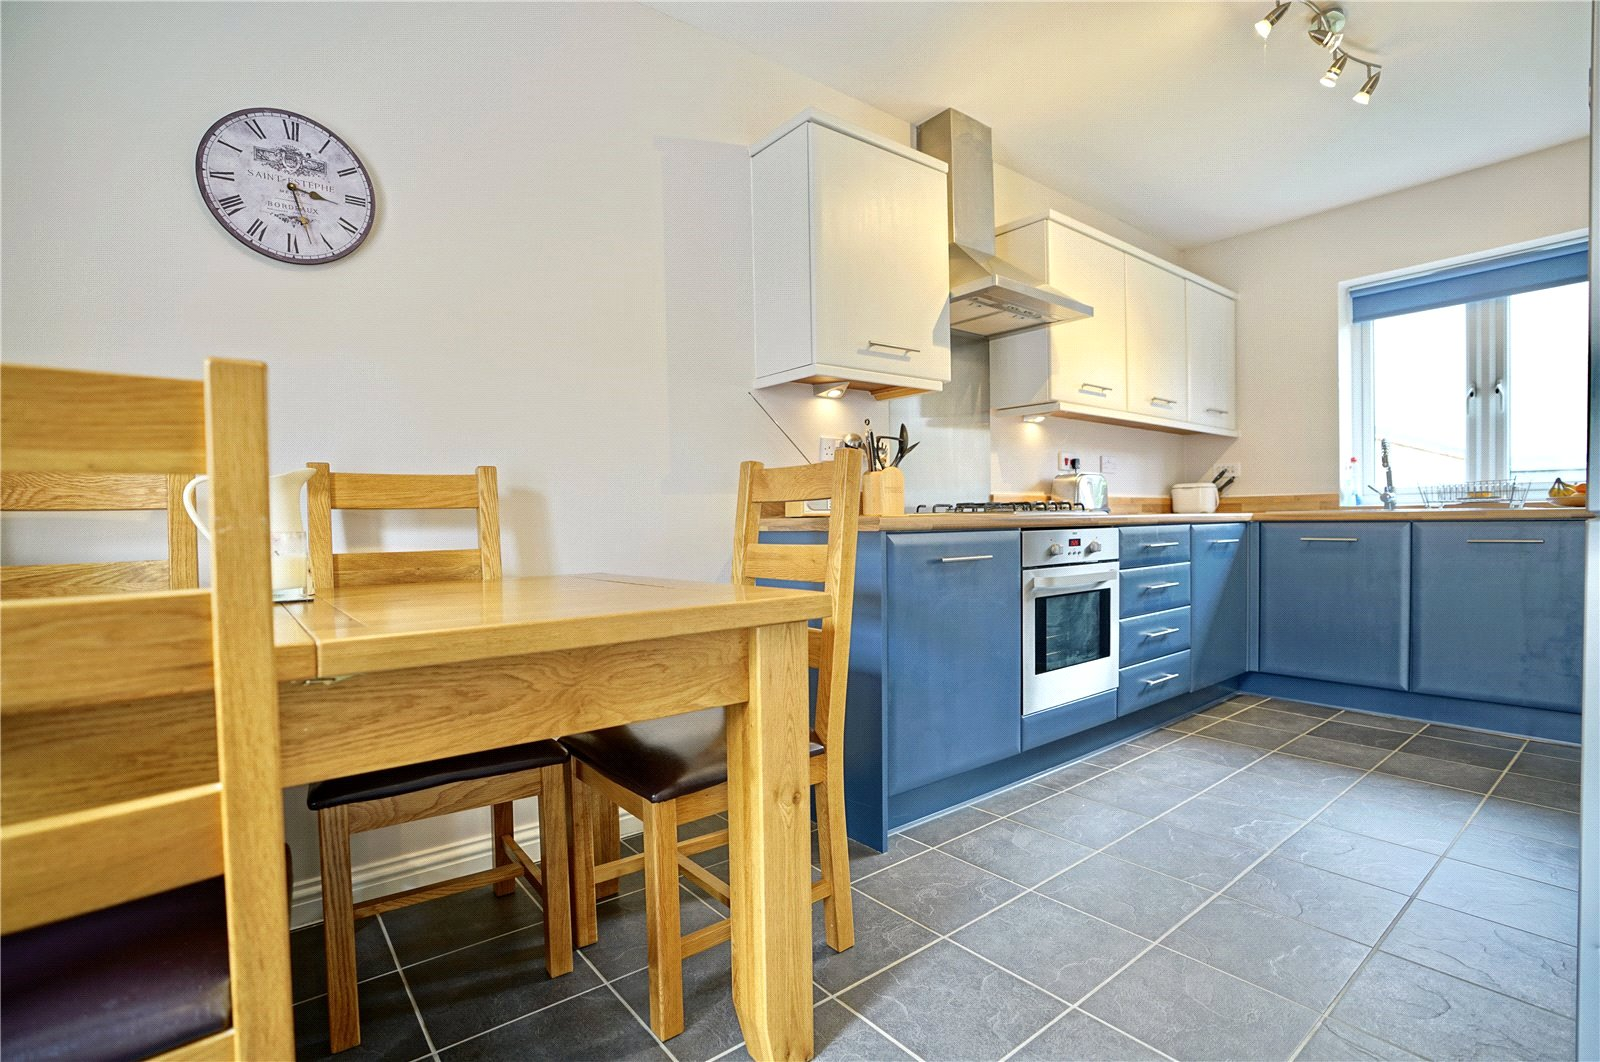 3 bed house for sale in St. Ives, PE27 5DL 1